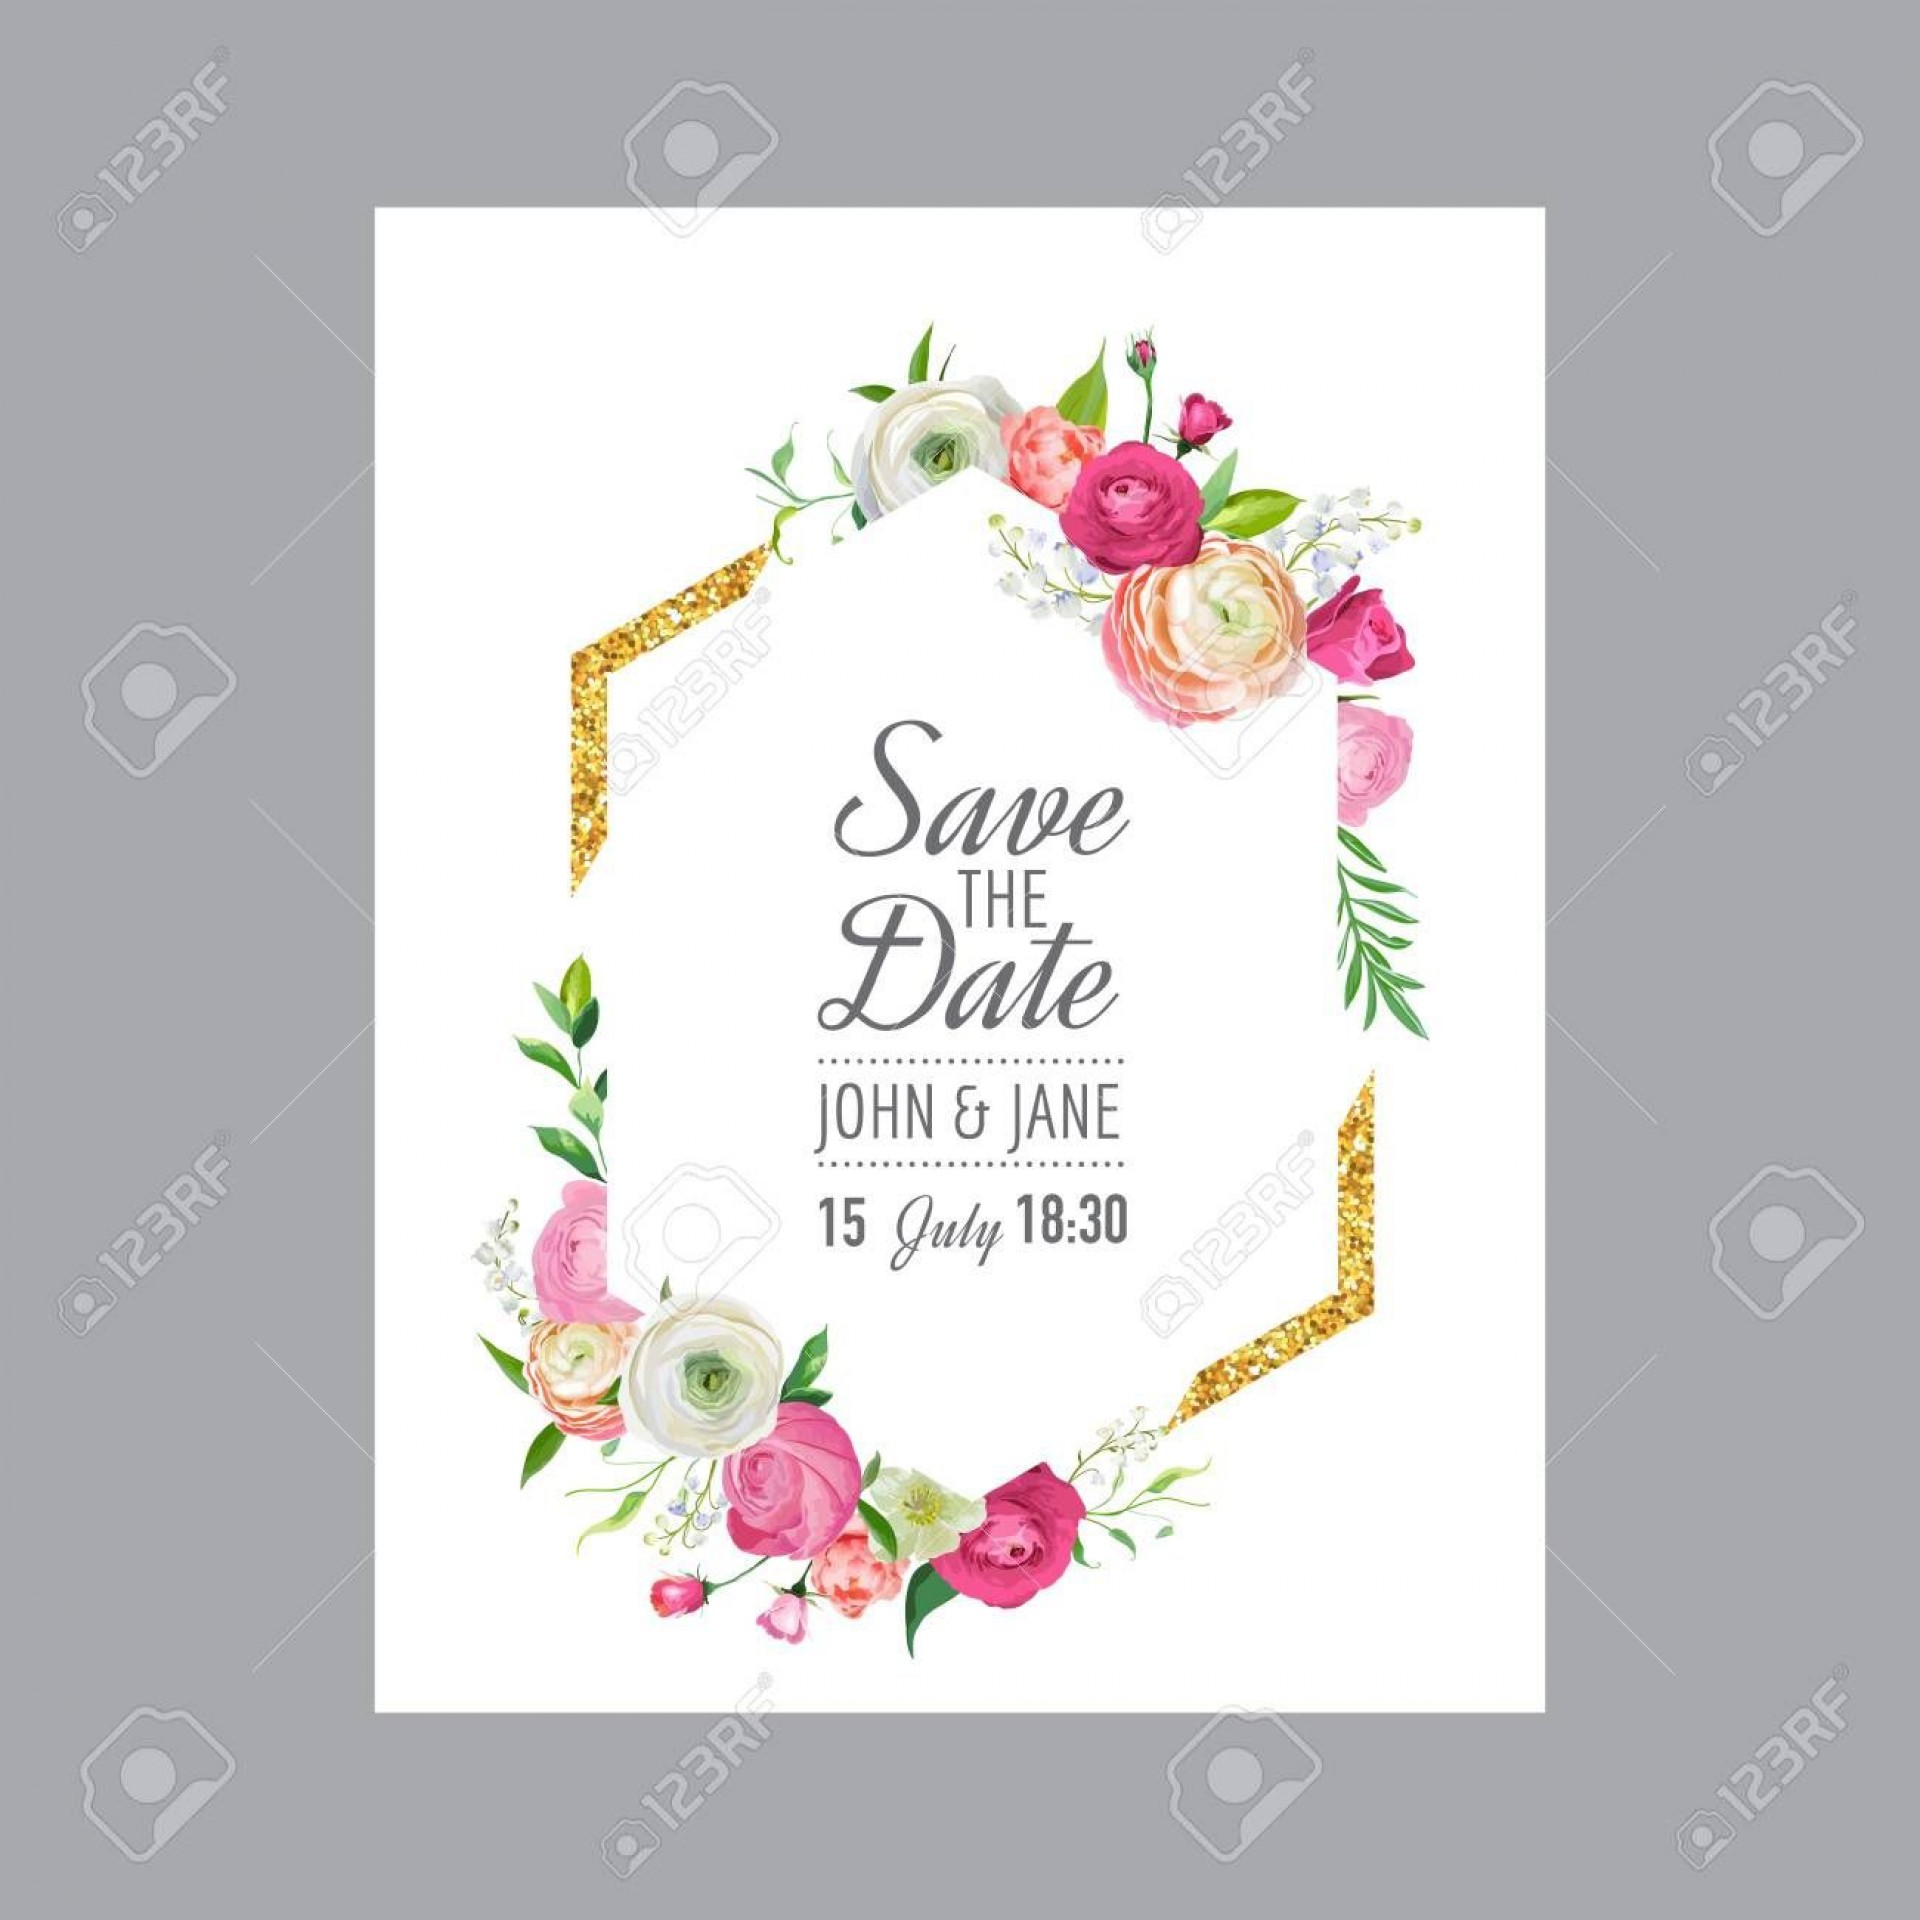 005 Imposing Save The Date Birthday Card Template High Definition  Free Printable1920